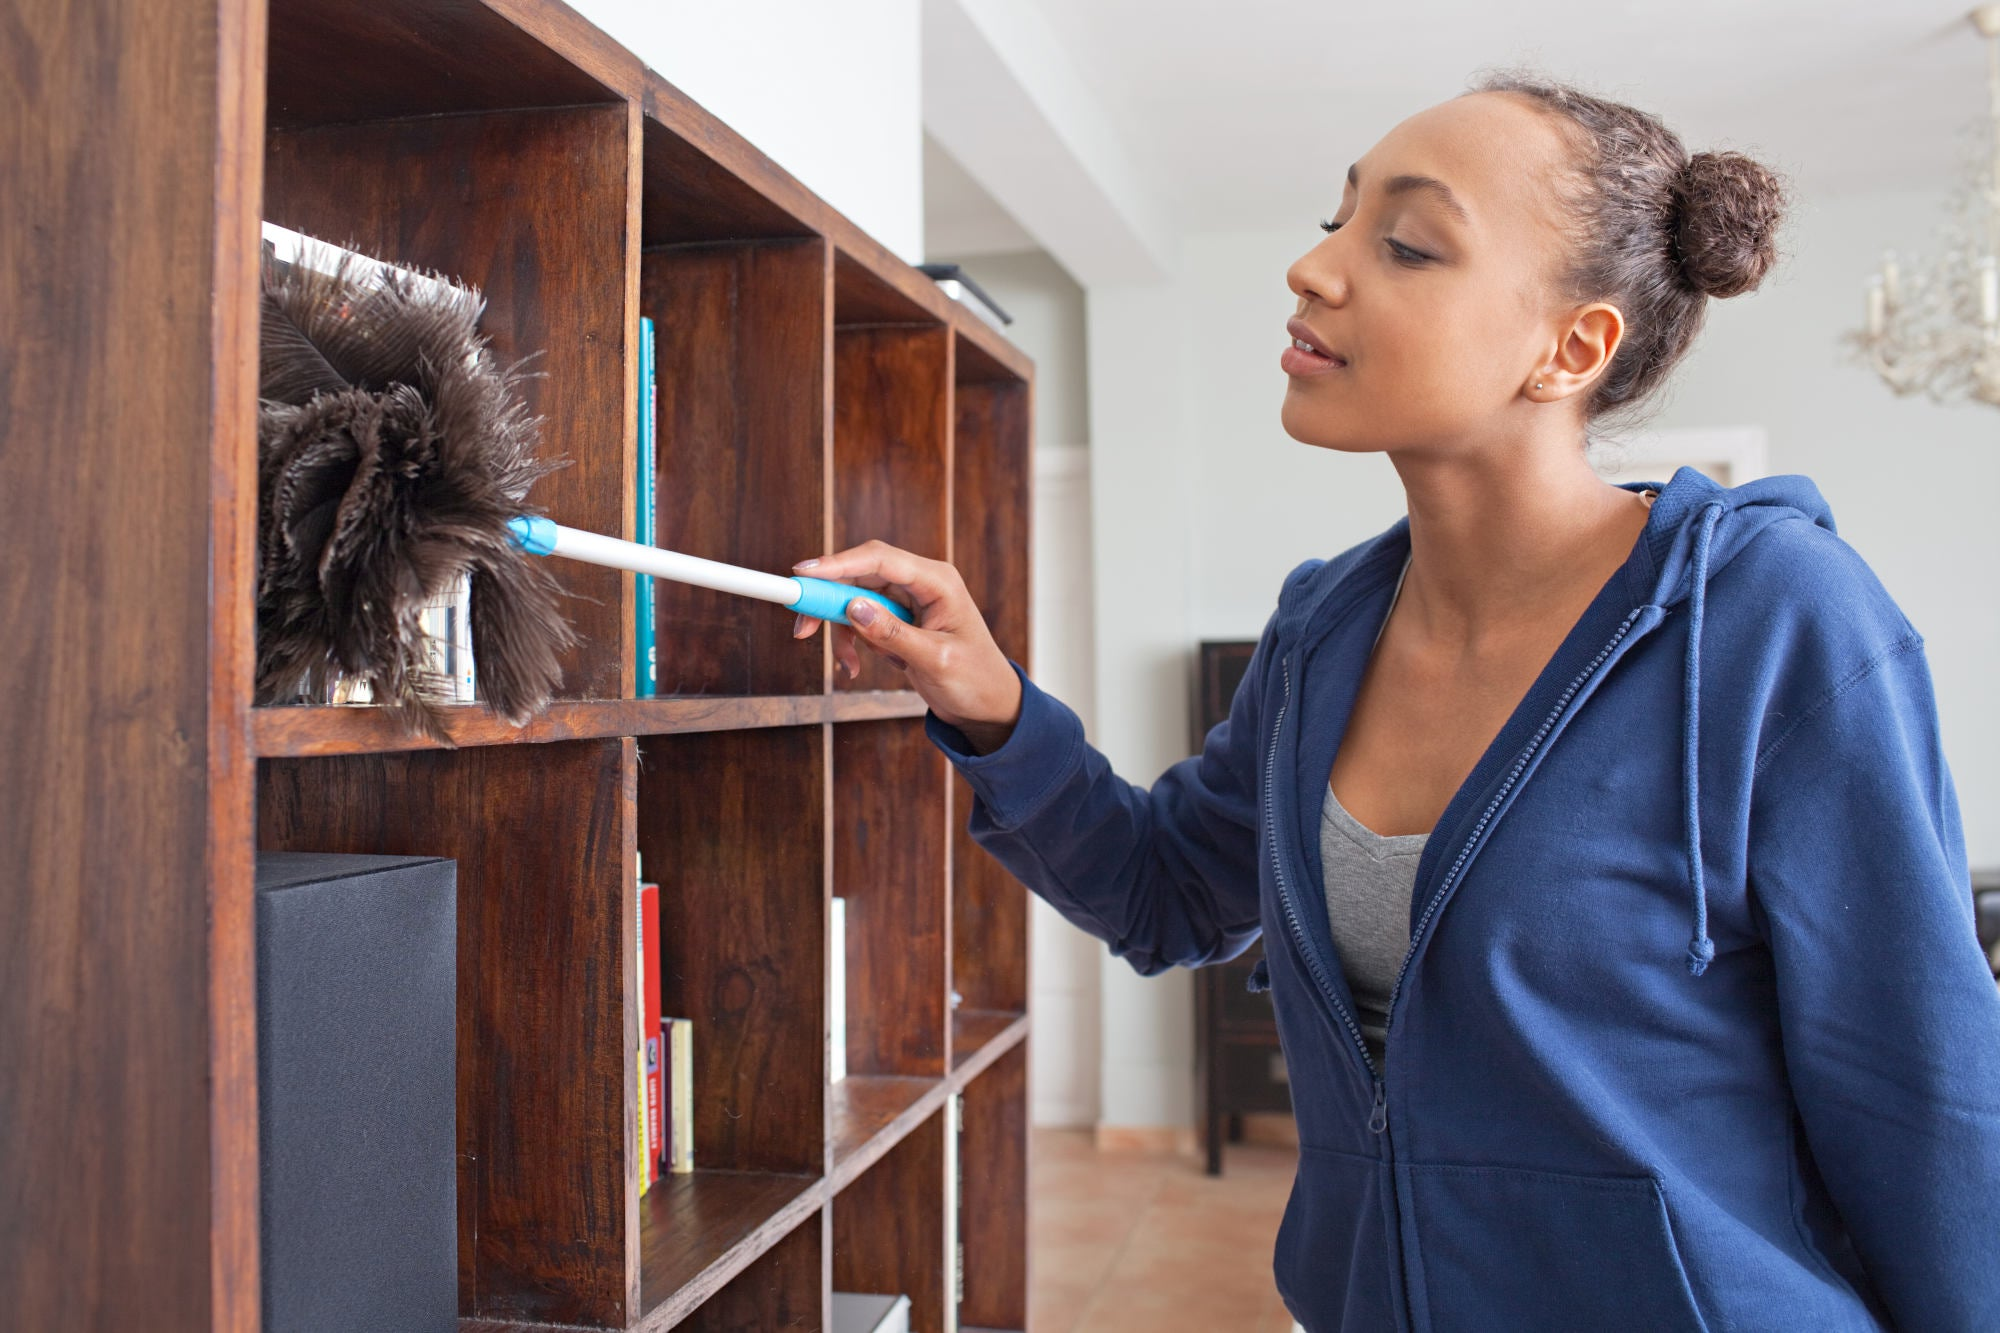 Portrait of beautiful african american teenager using a feather duster to clean wood book shelves in home living room, smiling indoors. Young female spring cleaning house interior, skills and chores.